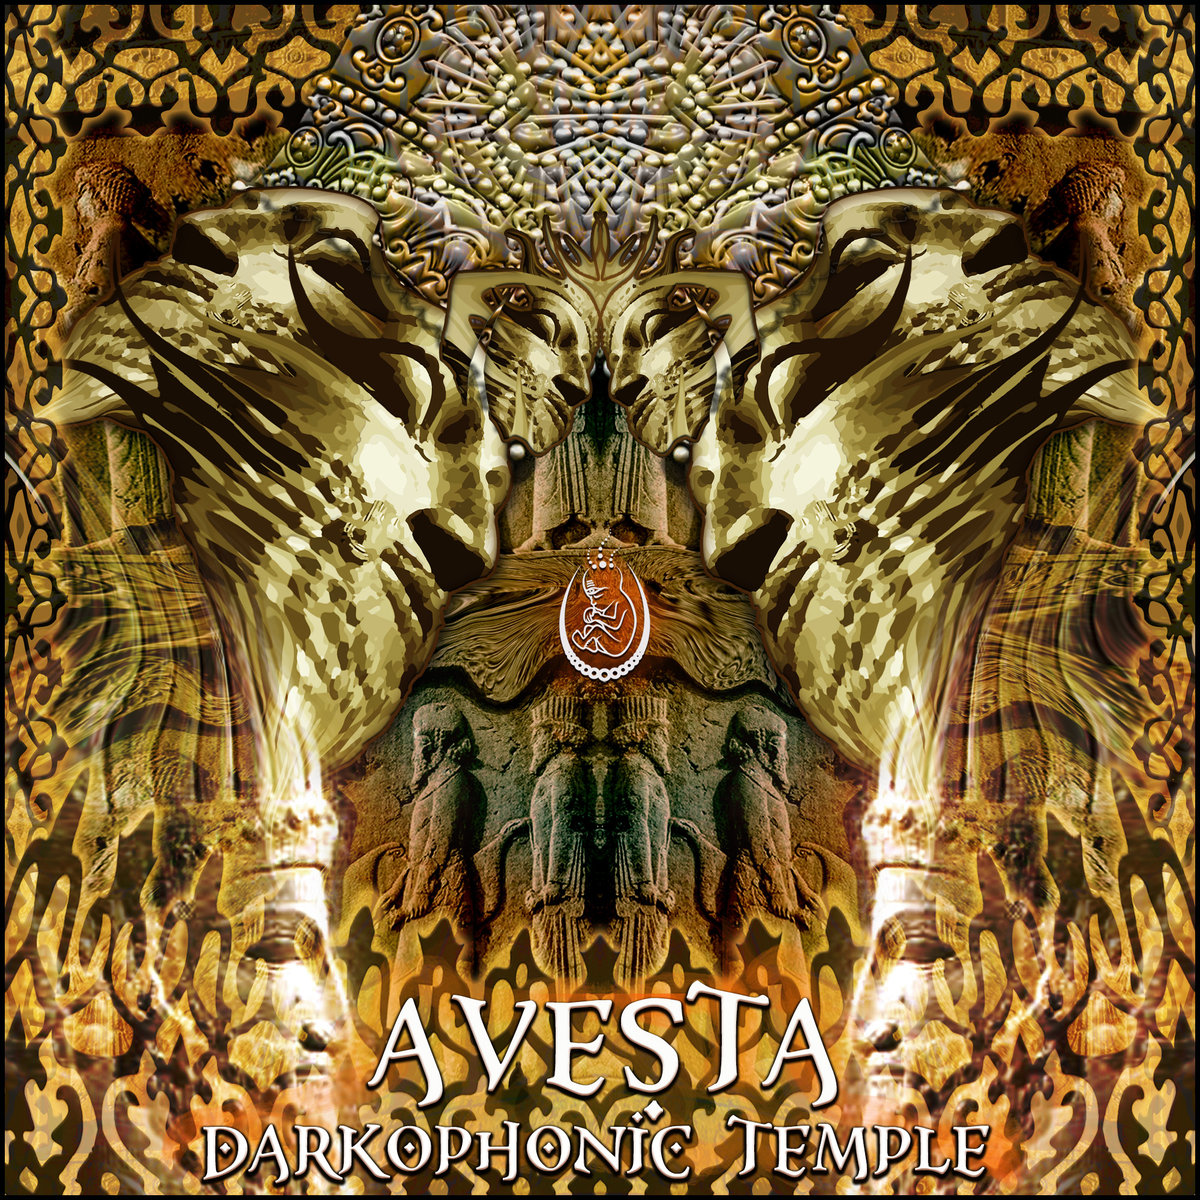 Darkophonic Temple - From Dark to Light @ 'Avesta' album (ambient, electronic)